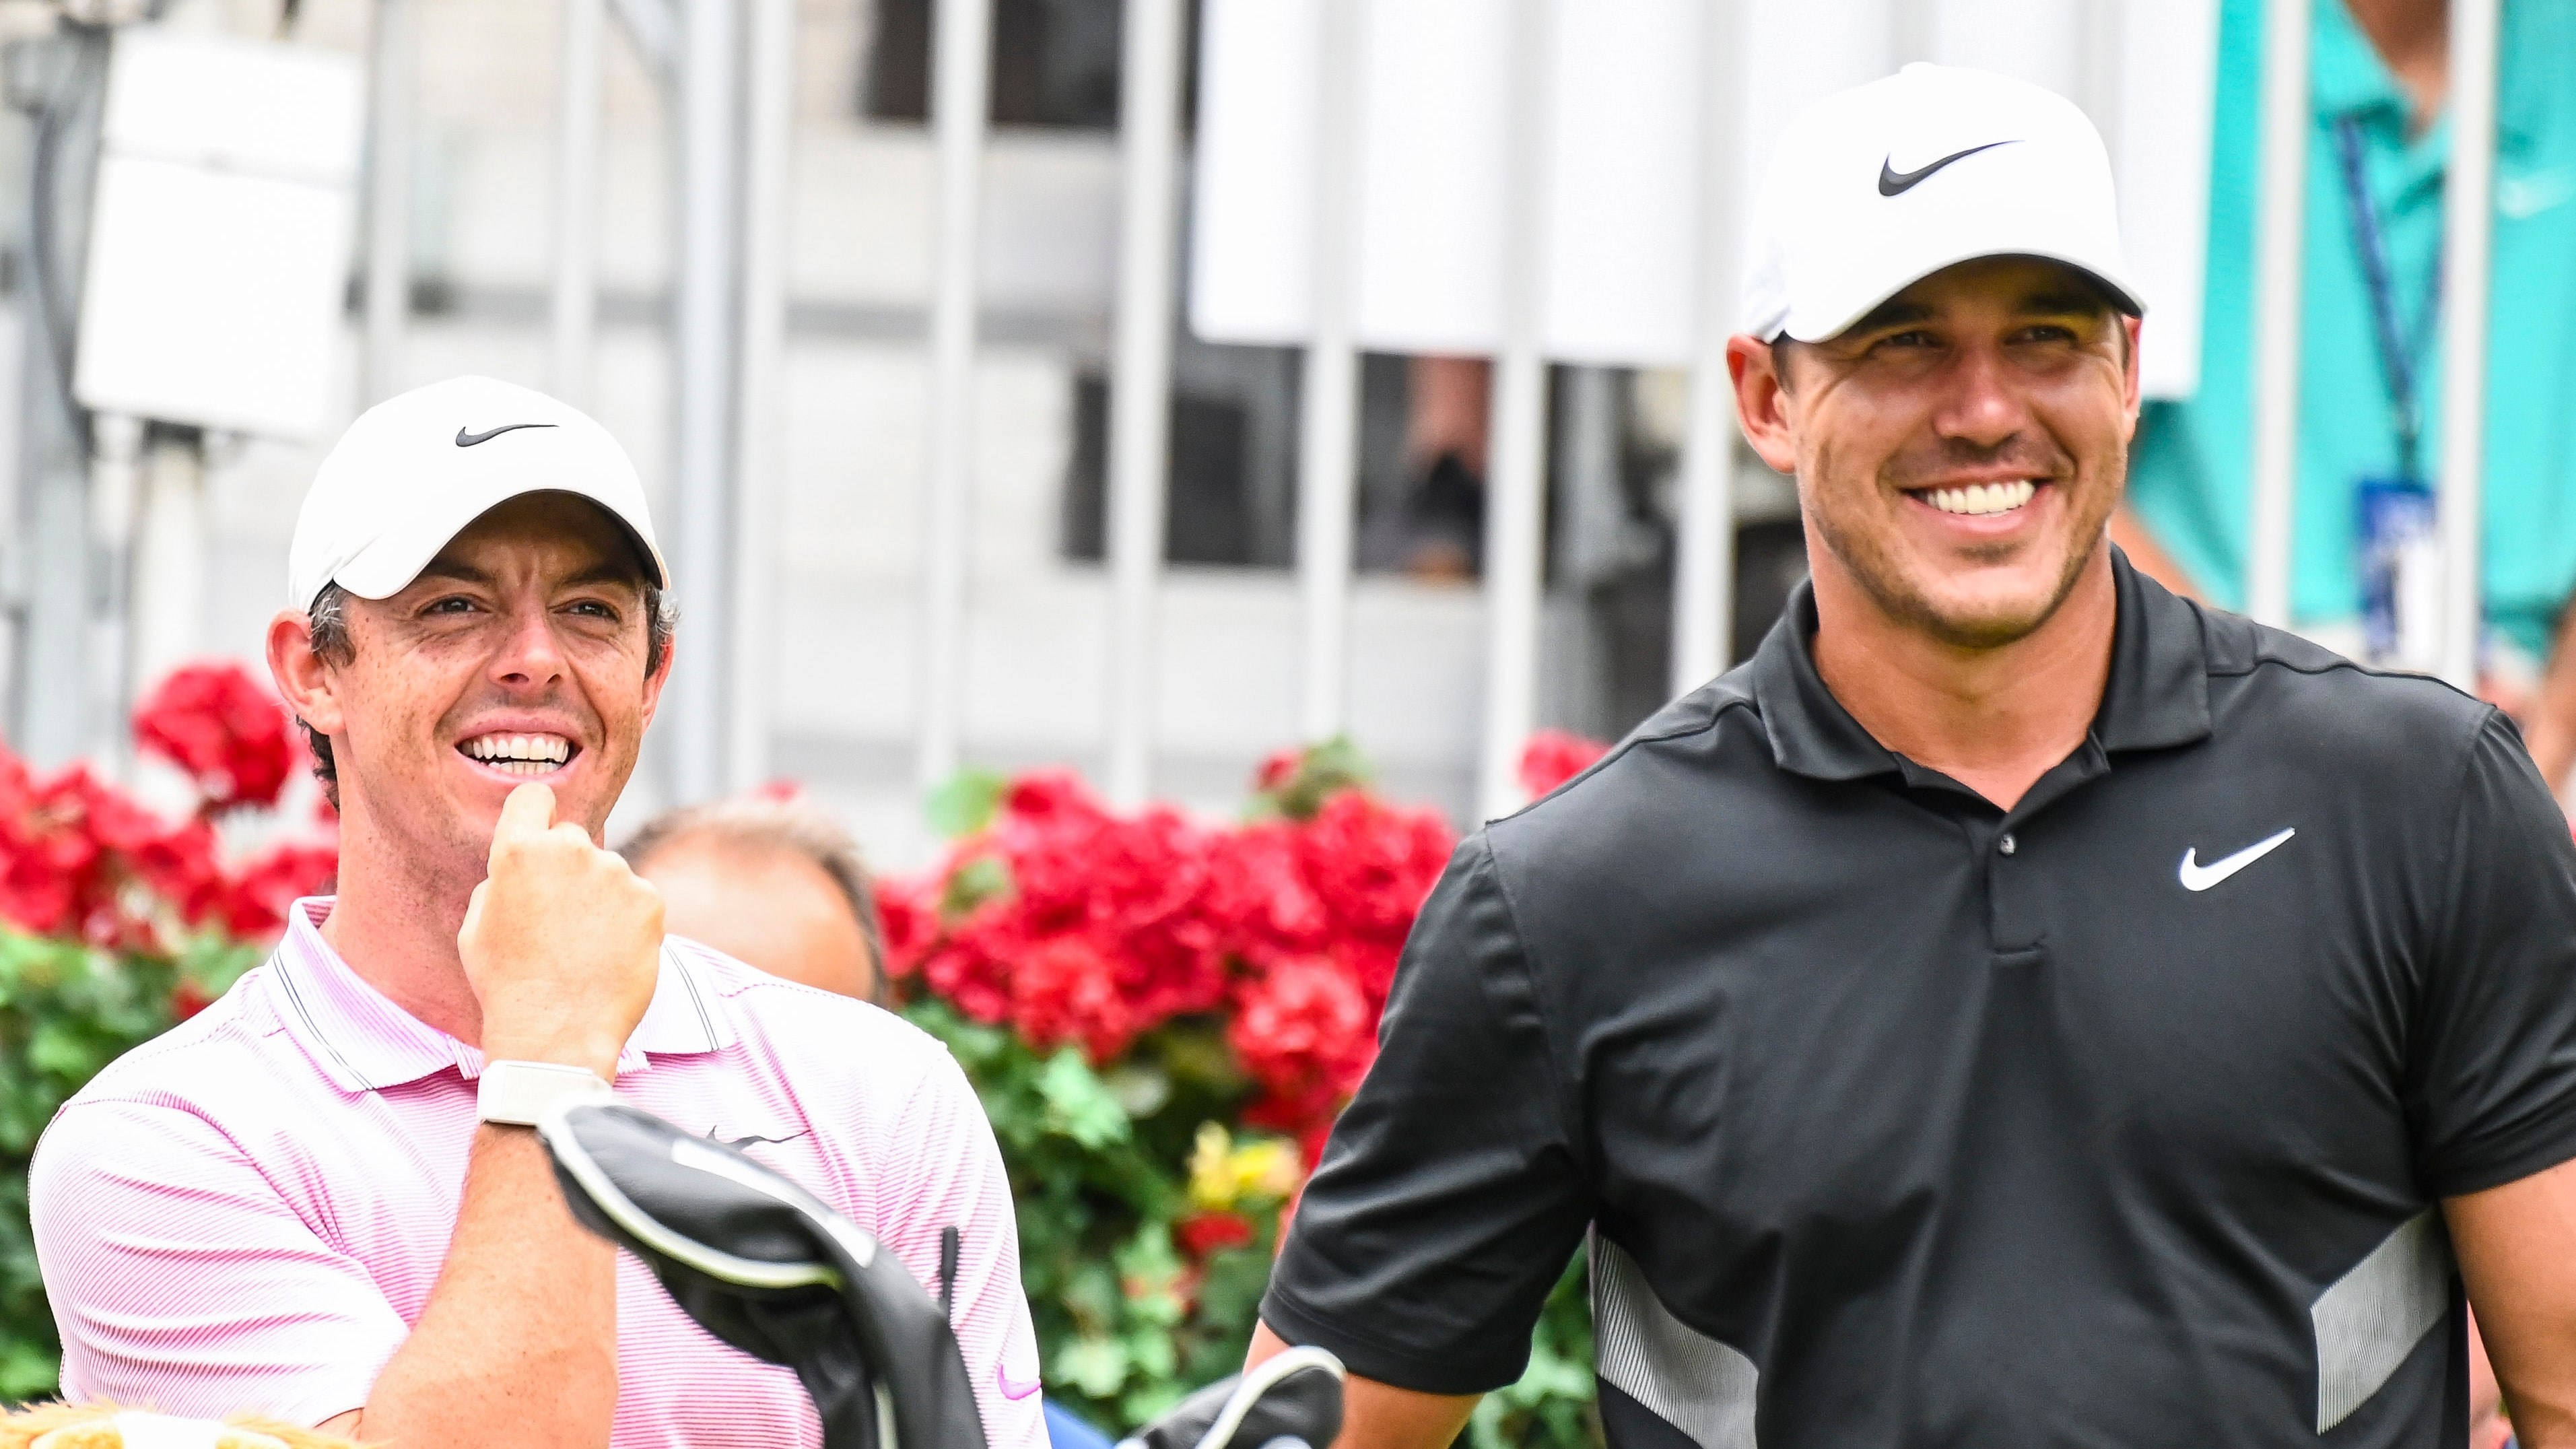 Brooks Koepka downplays notion of 'rivalry' with Rory McIlroy